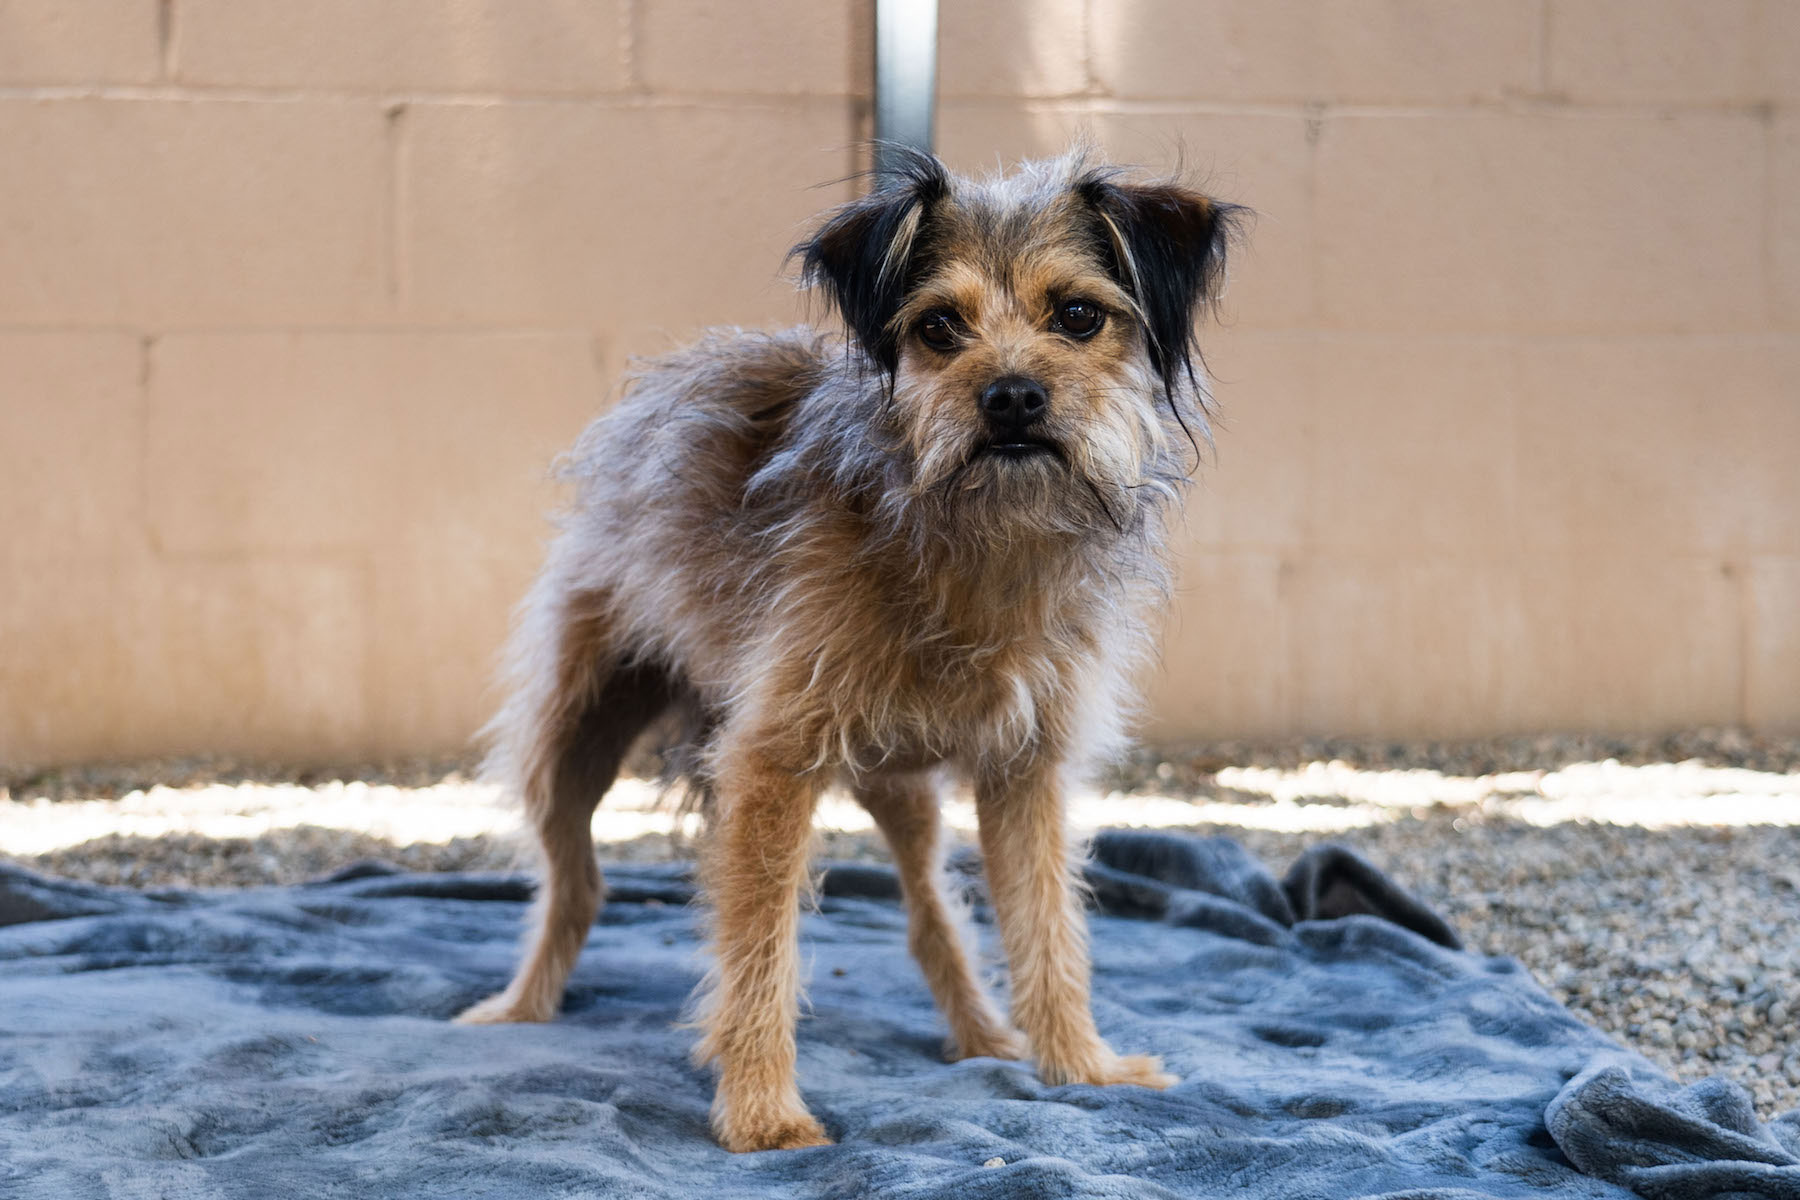 Meet Pet of the Week Chiquita pic